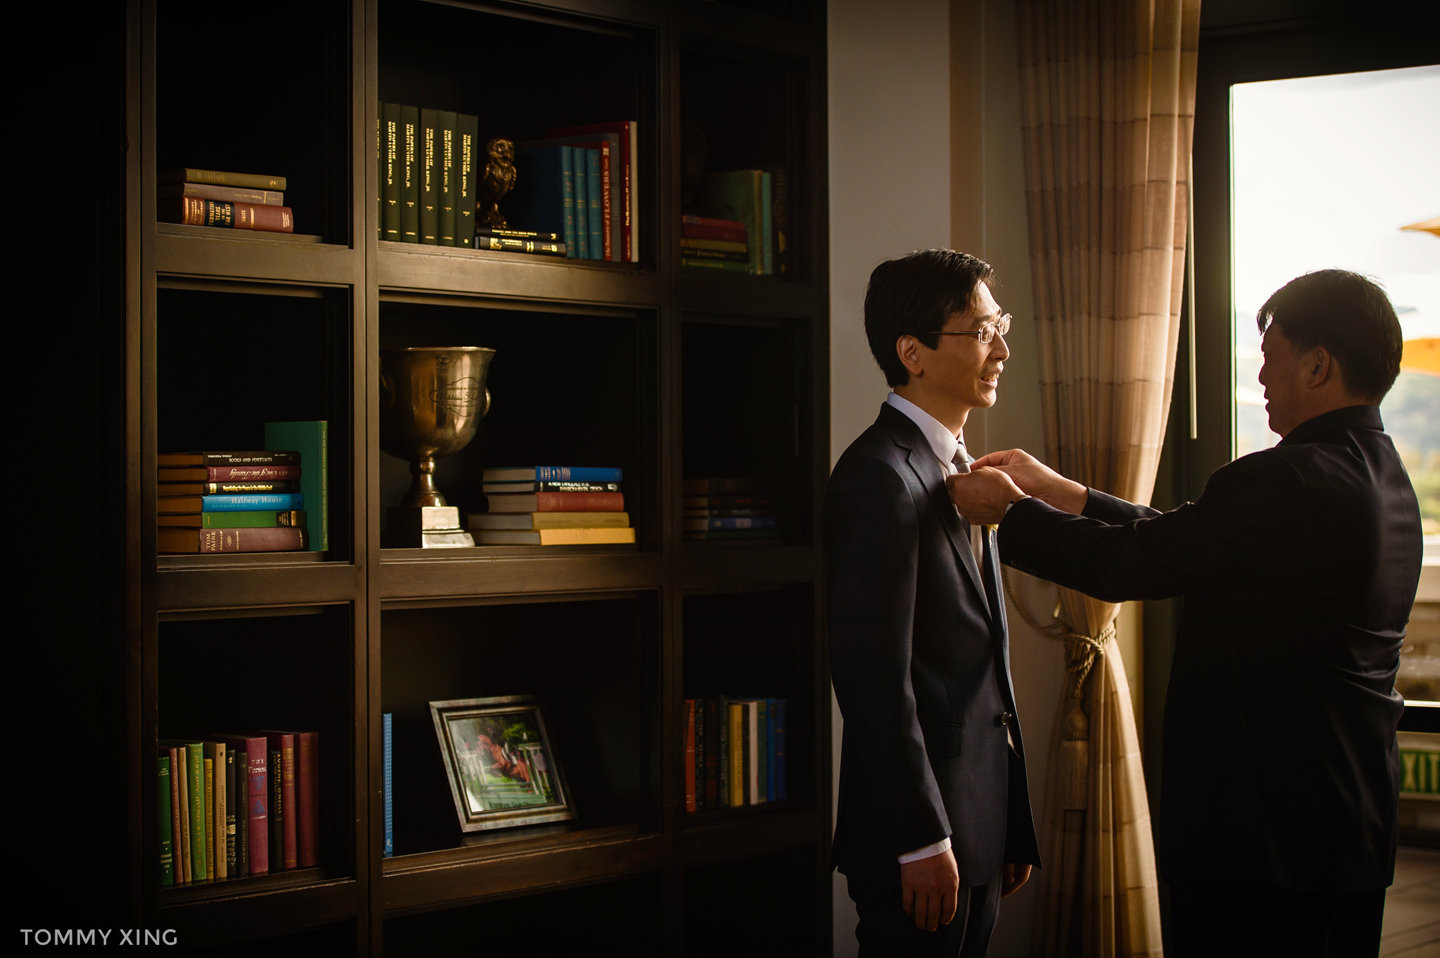 San Francisco Wedding Photography Valley Presbyterian Church WEDDING Tommy Xing Photography 洛杉矶旧金山婚礼婚纱照摄影师010.jpg